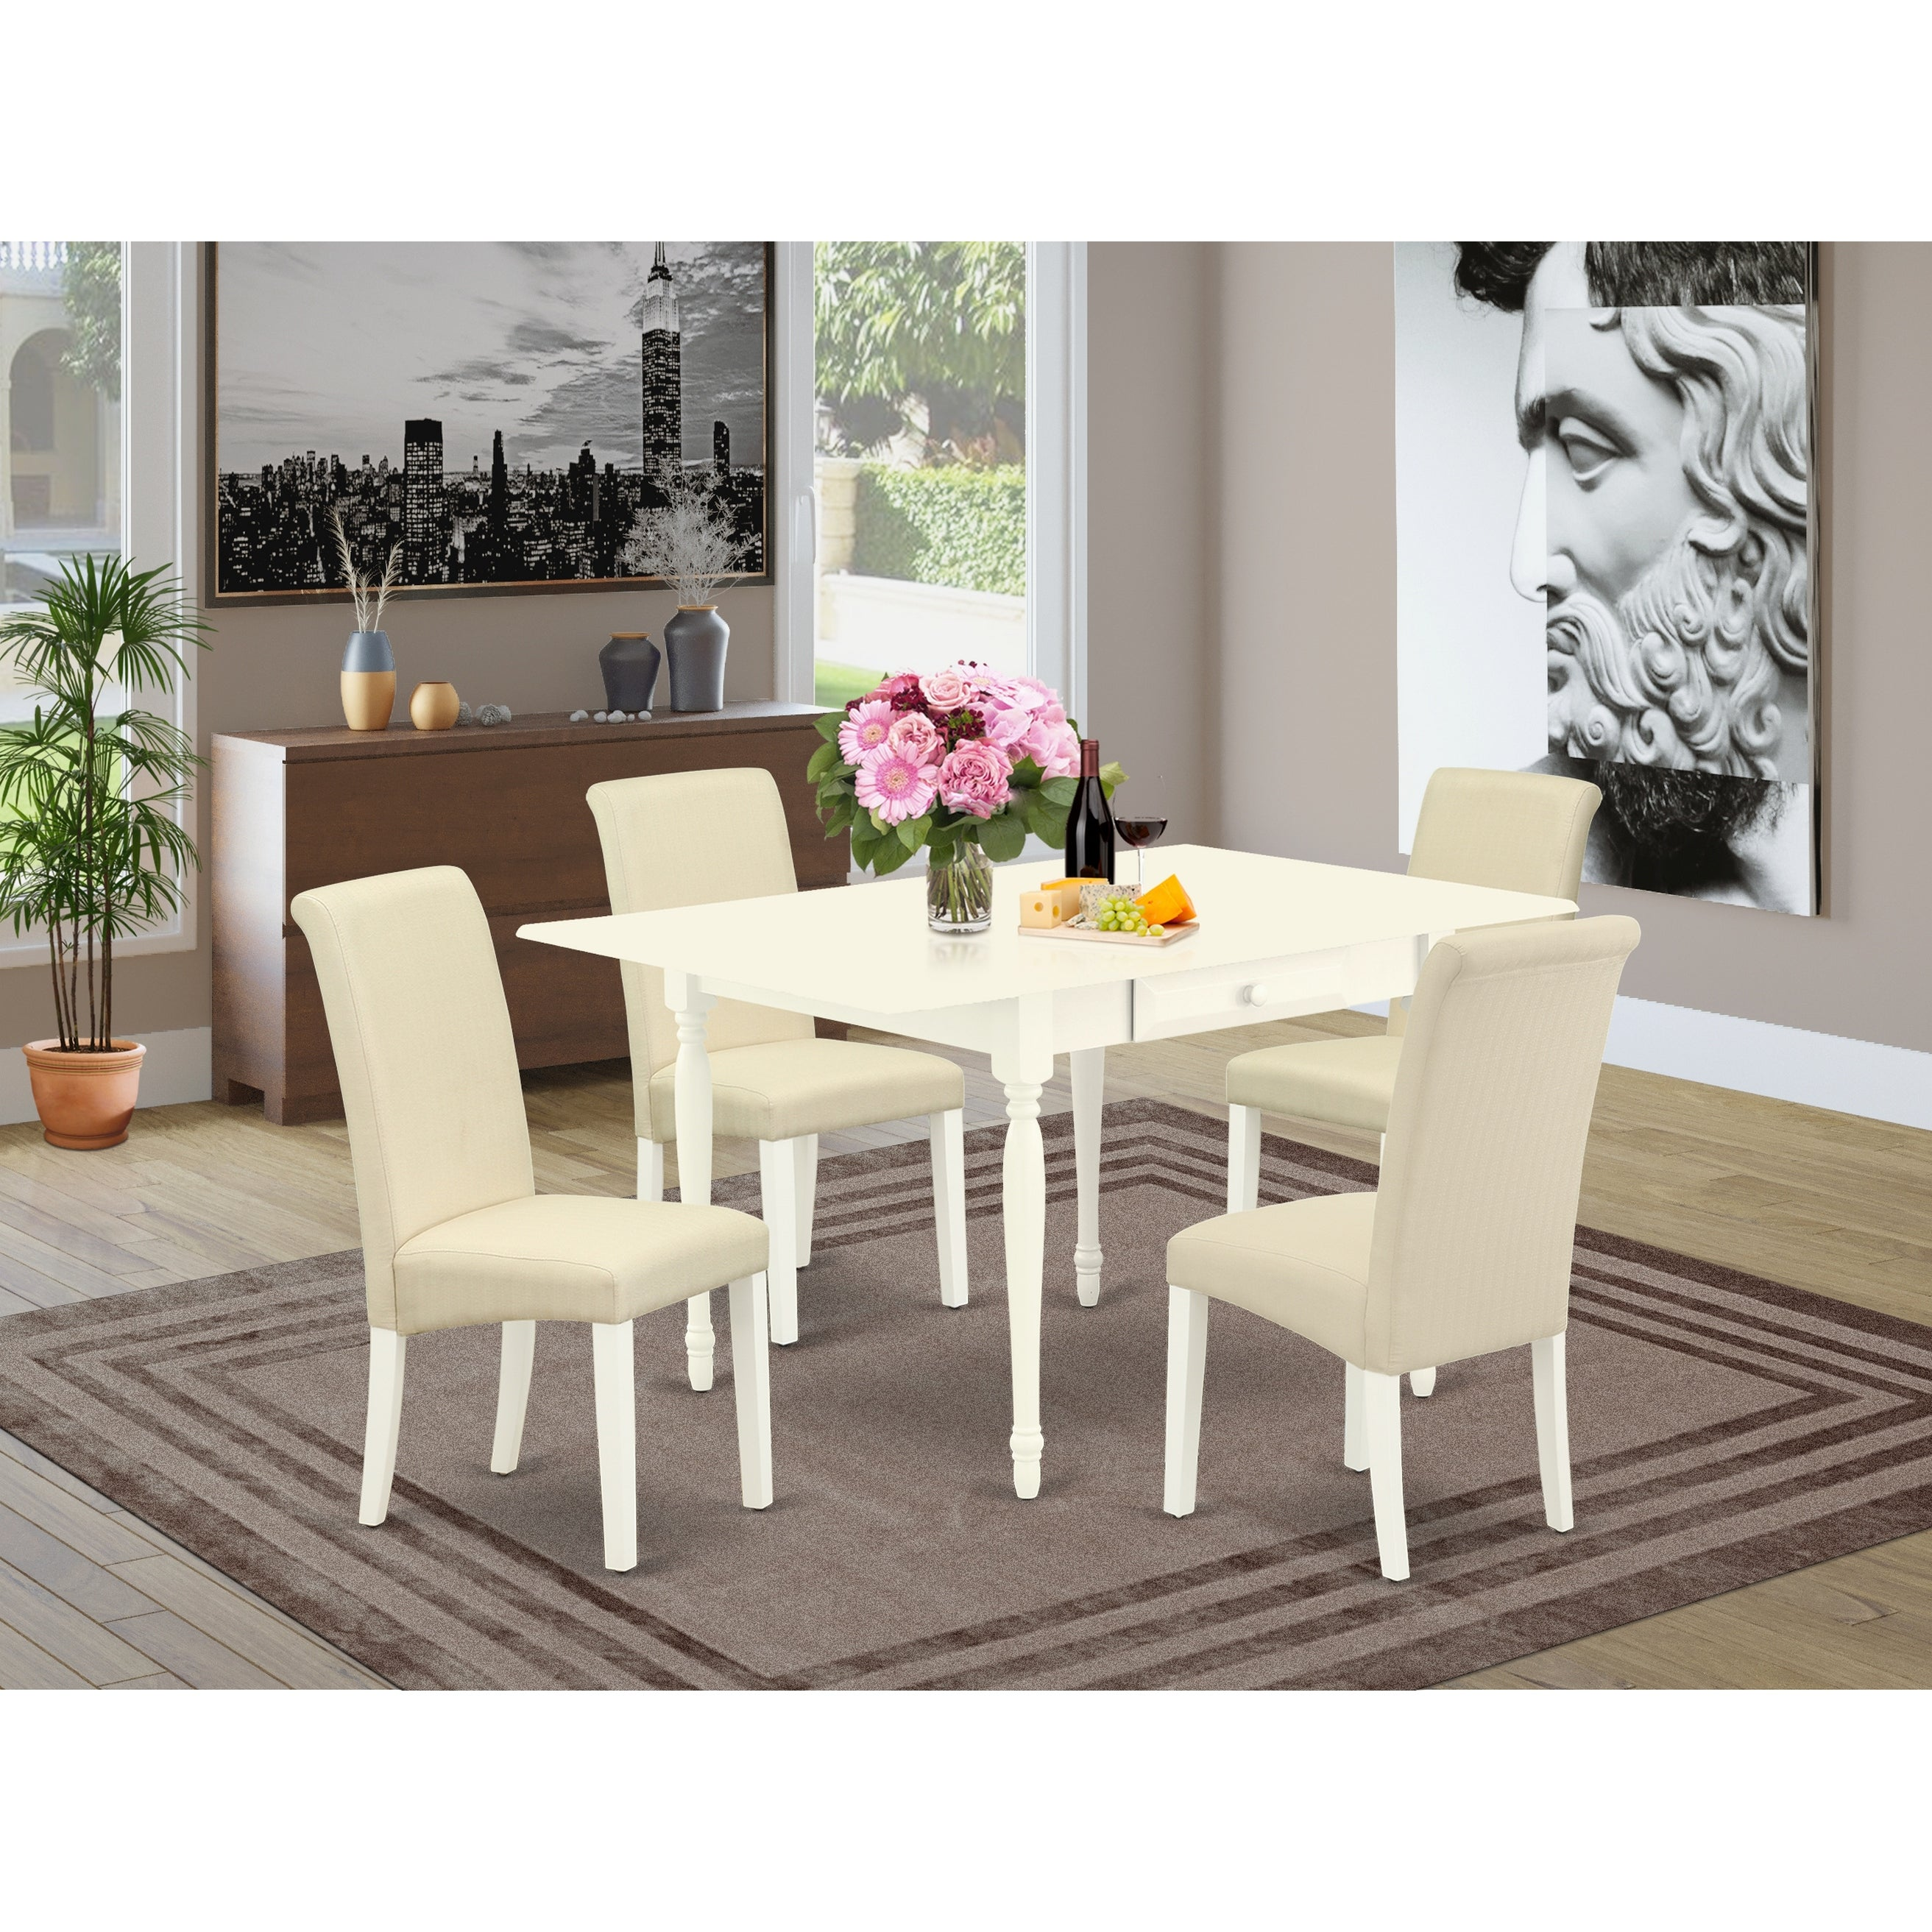 Dinette Table And Parson Dining Chairs With Cream Color Linen Fabric Upholstery Seat Number Of Chairs Option Overstock 32448756